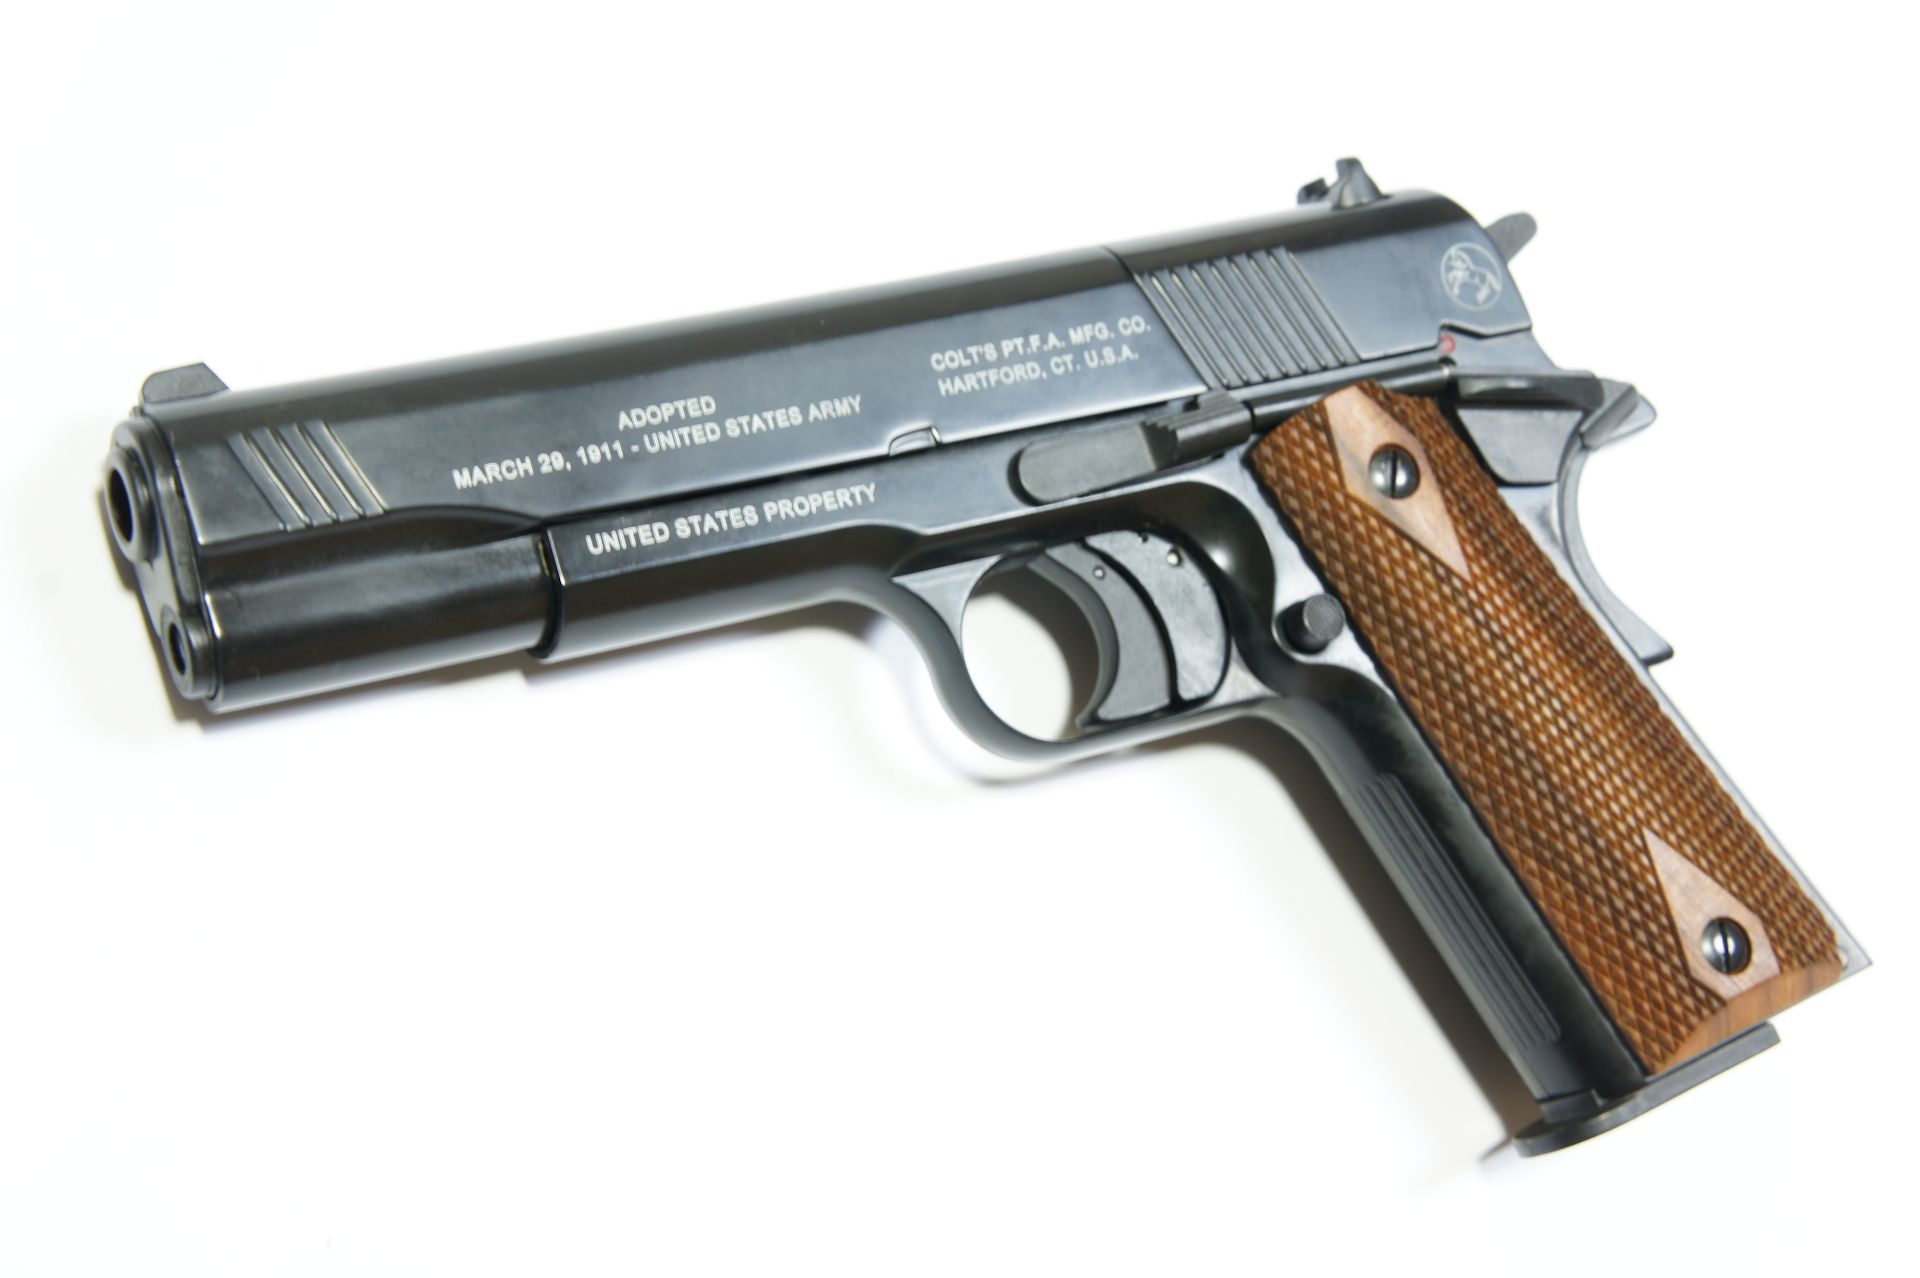 Colt M1911 - 100 Years